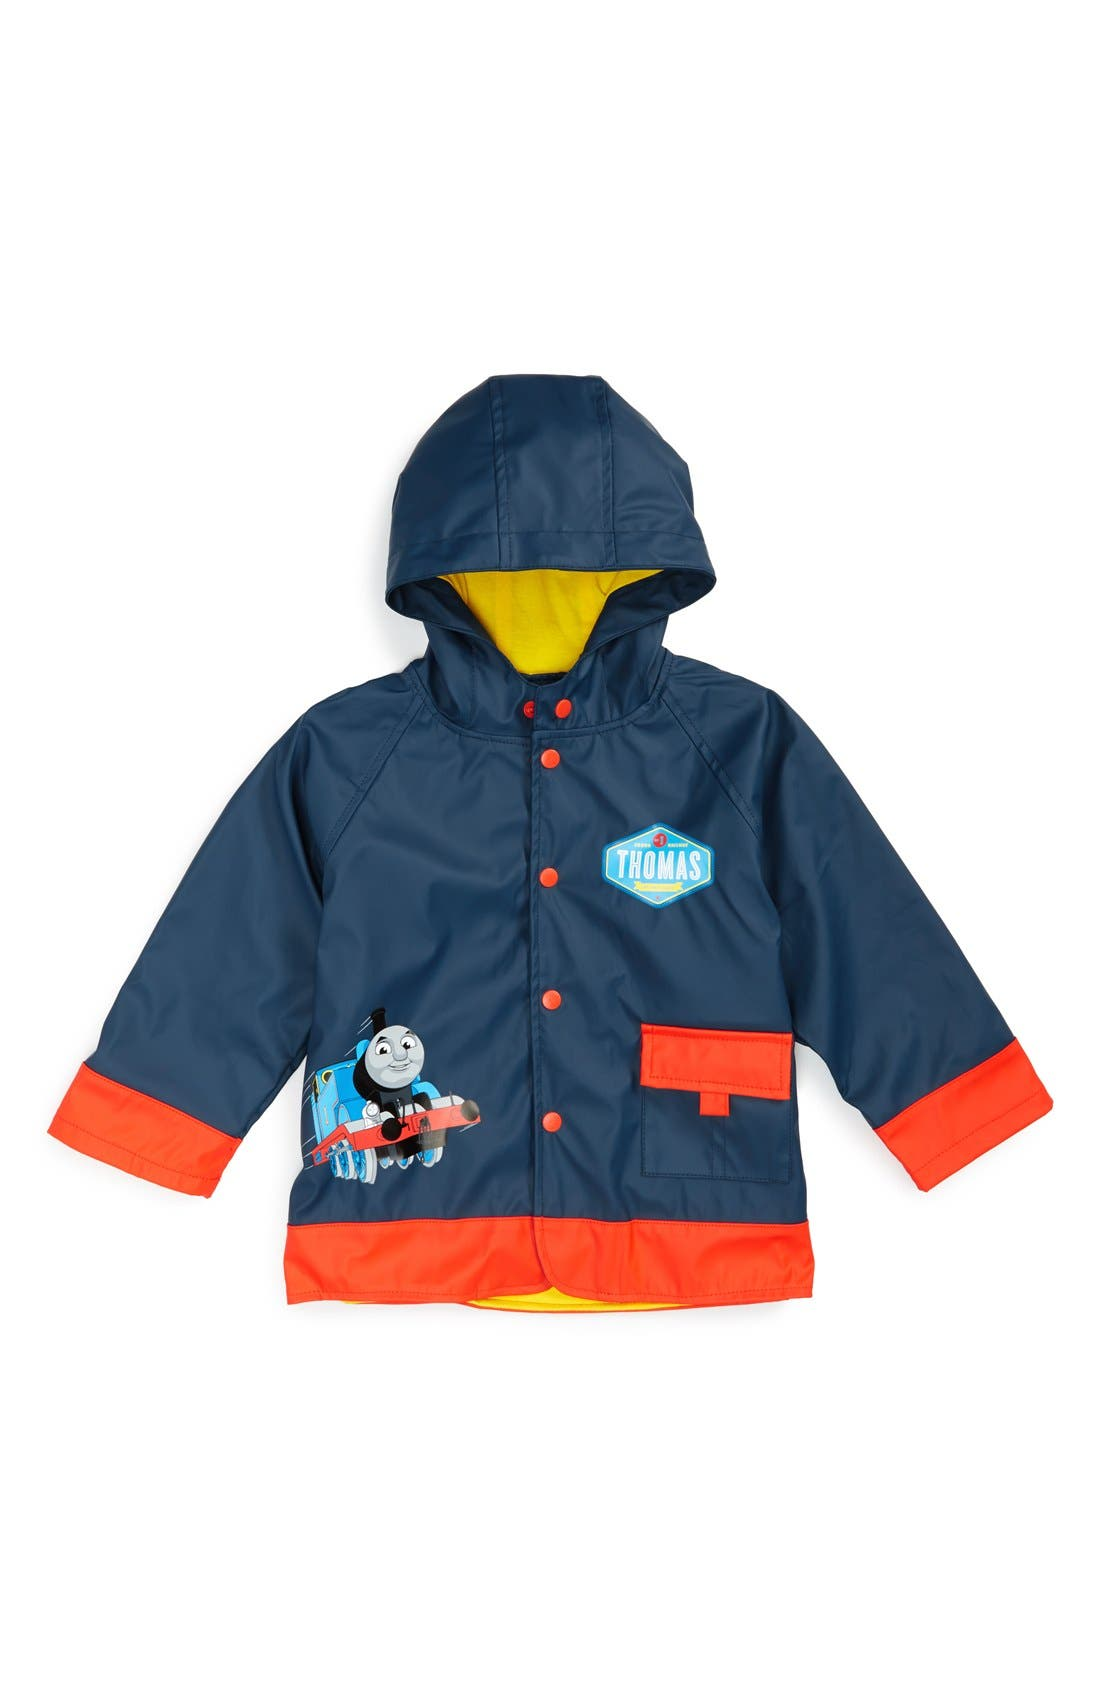 Alternate Image 1 Selected - Western Chief 'Thomas the Tank Engine' Raincoat (Toddler & Little Kid)